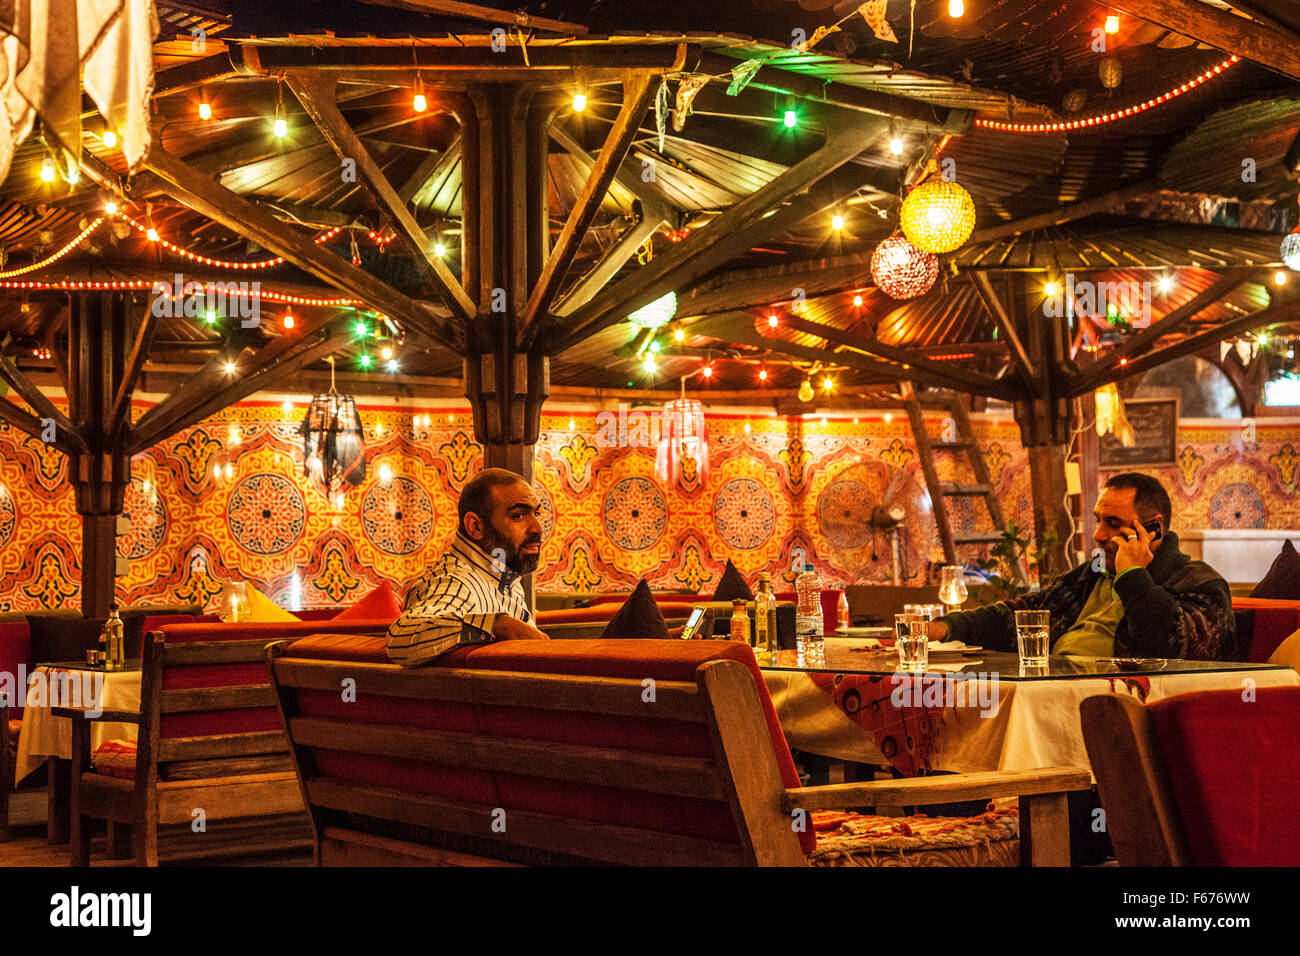 Interior of a typical waterside restaurant in Dahab, Egypt. - Stock Image